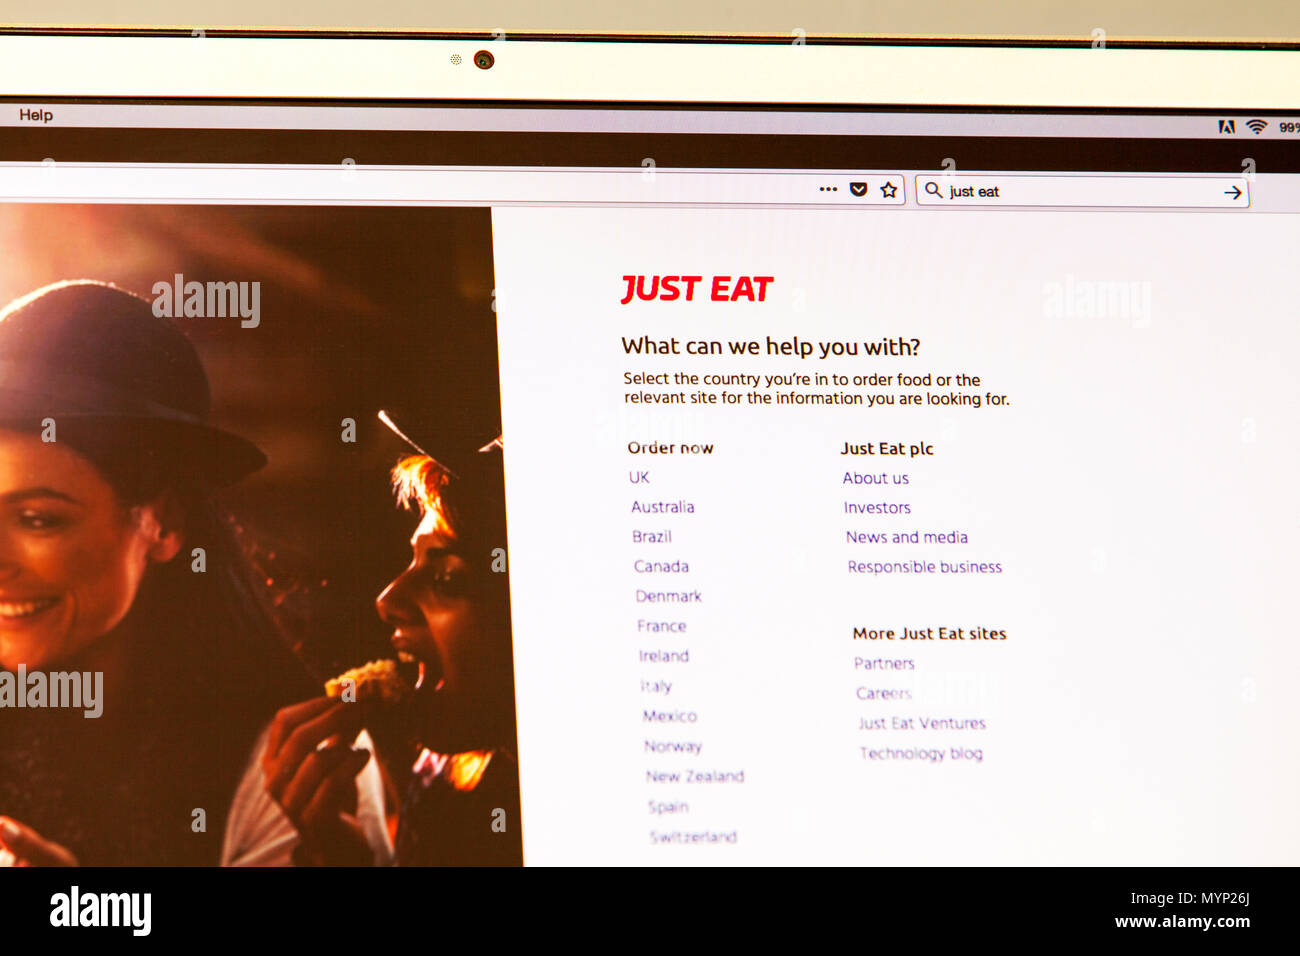 Just Eat Just Eat Uk Just Eat Plc Is An Online Food Order